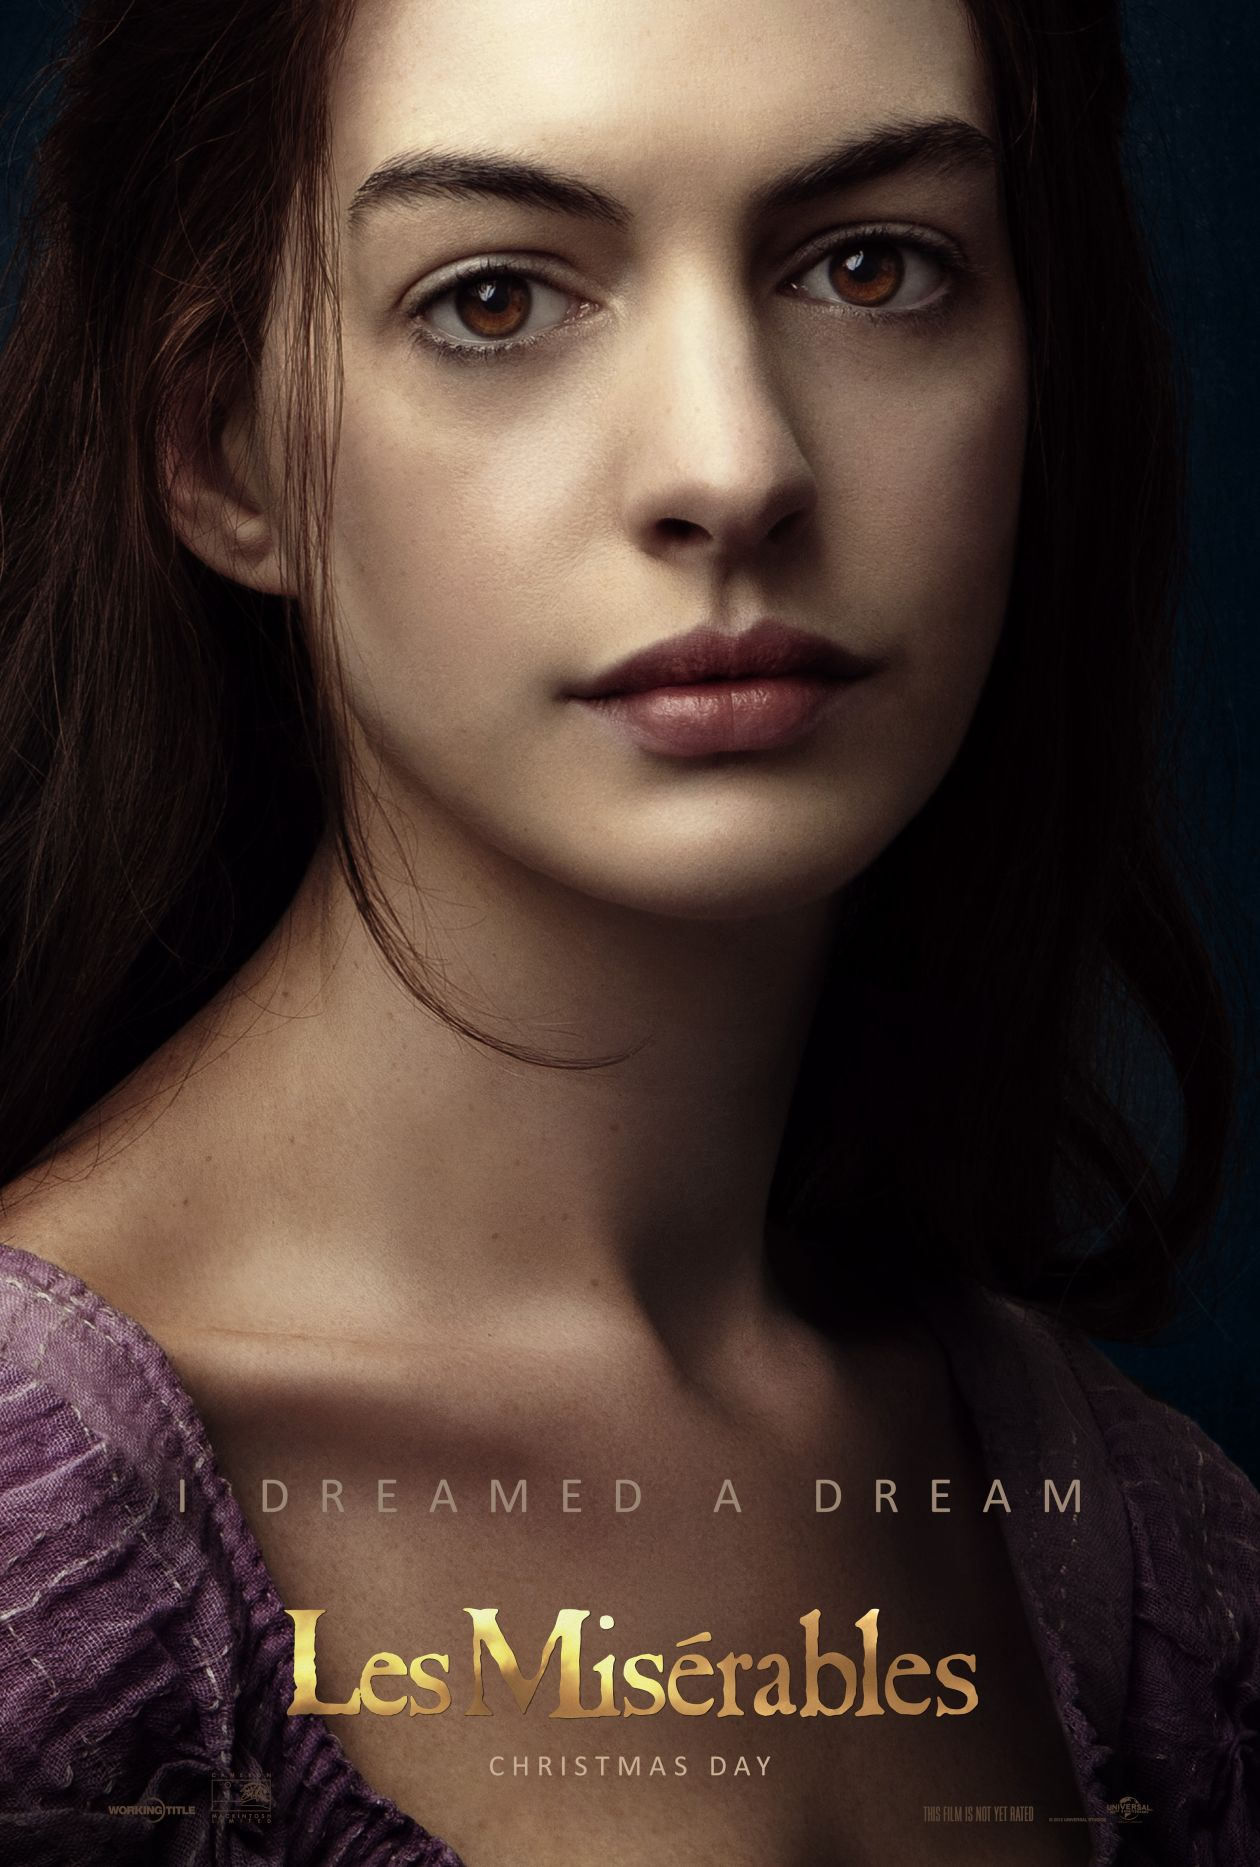 Anne Hathaway actress | Les Misérables : Fantine | Tom Hooper 2012